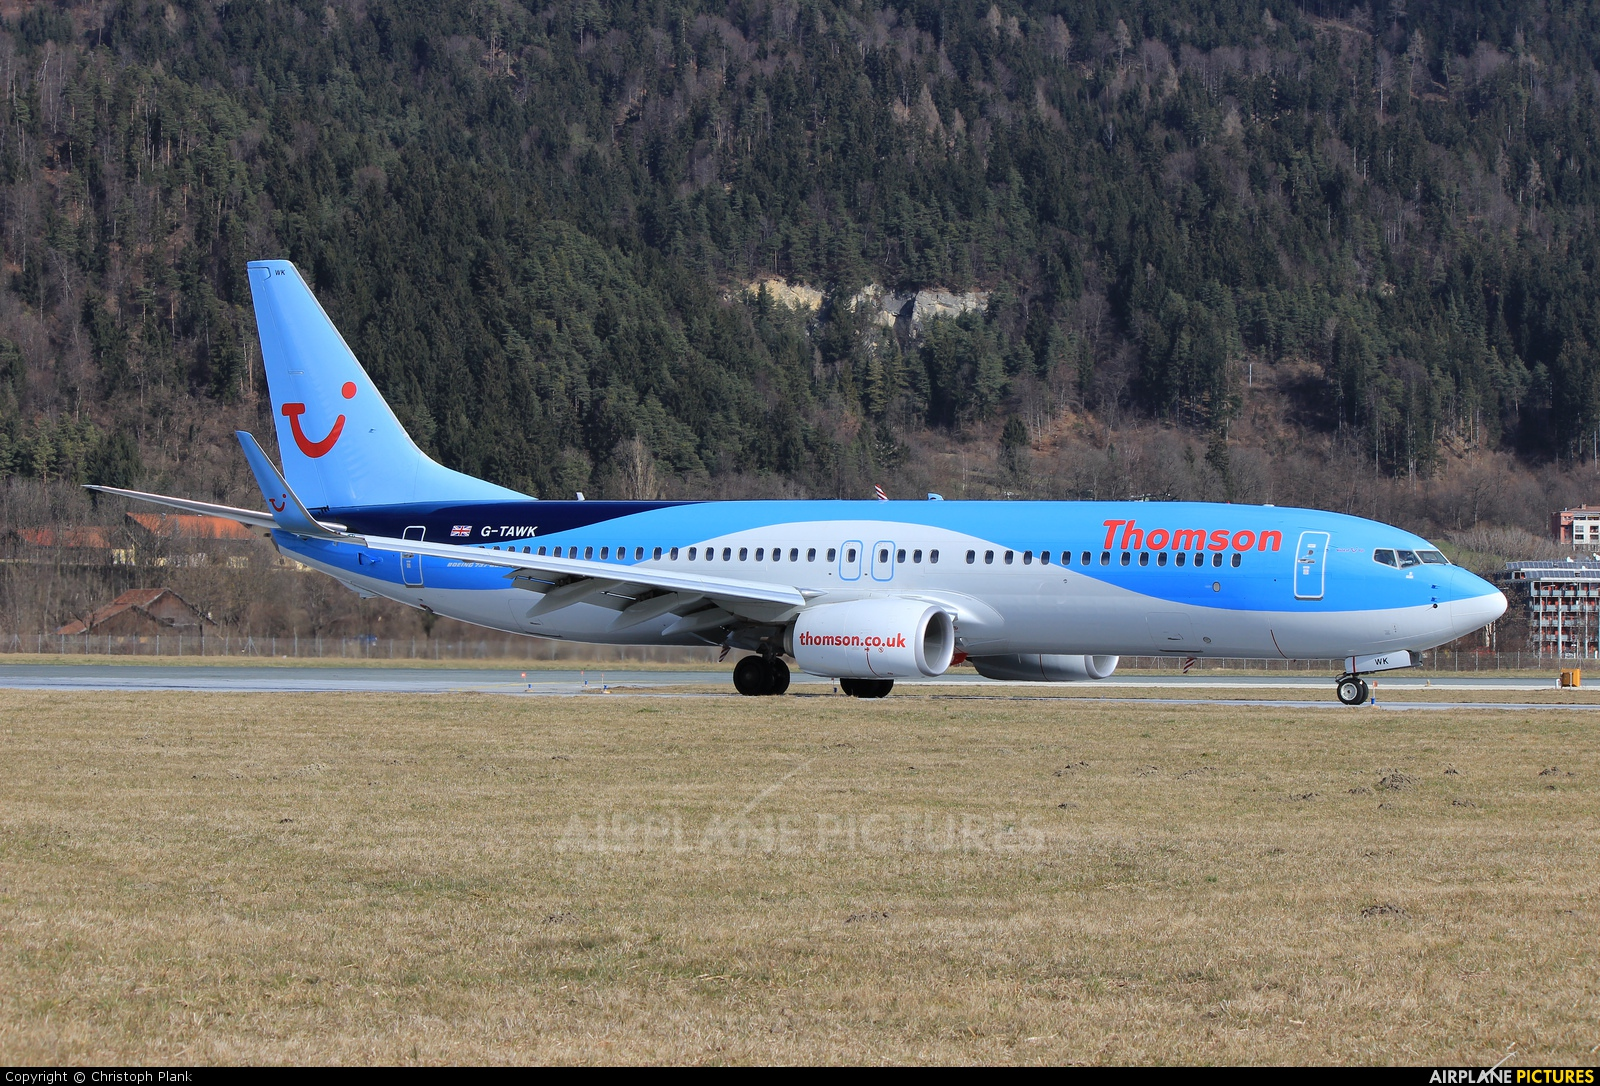 Thomson/Thomsonfly G-TAWK aircraft at Innsbruck